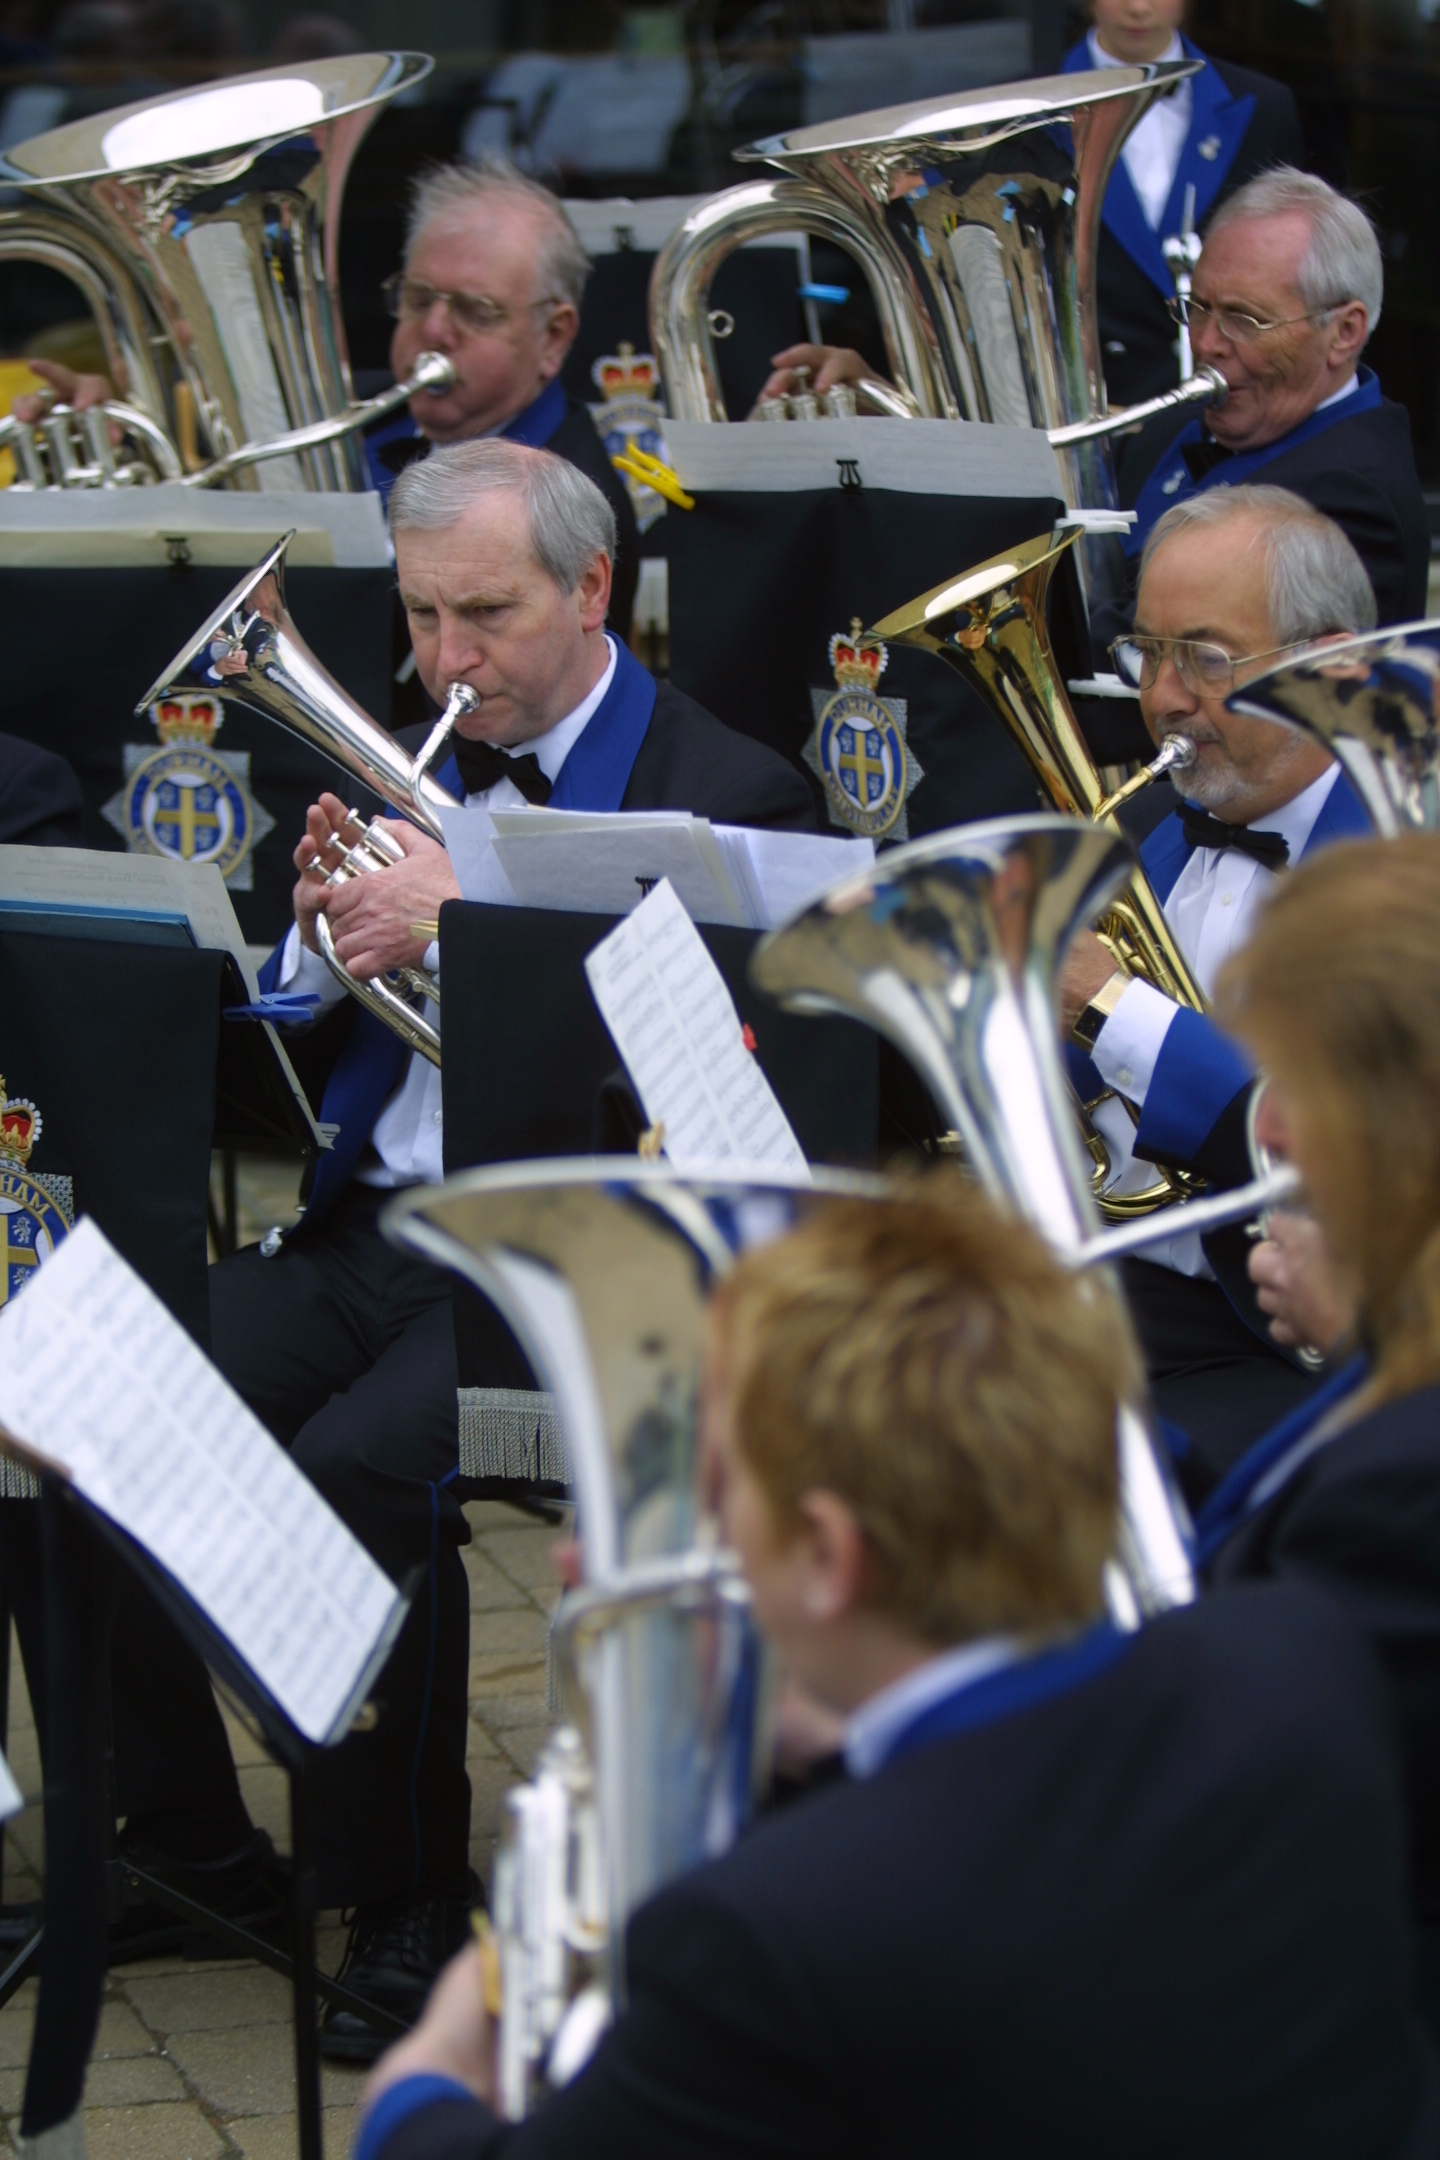 Police band pulls out of Brassed Off after ex-miners raise sensitivity concerns